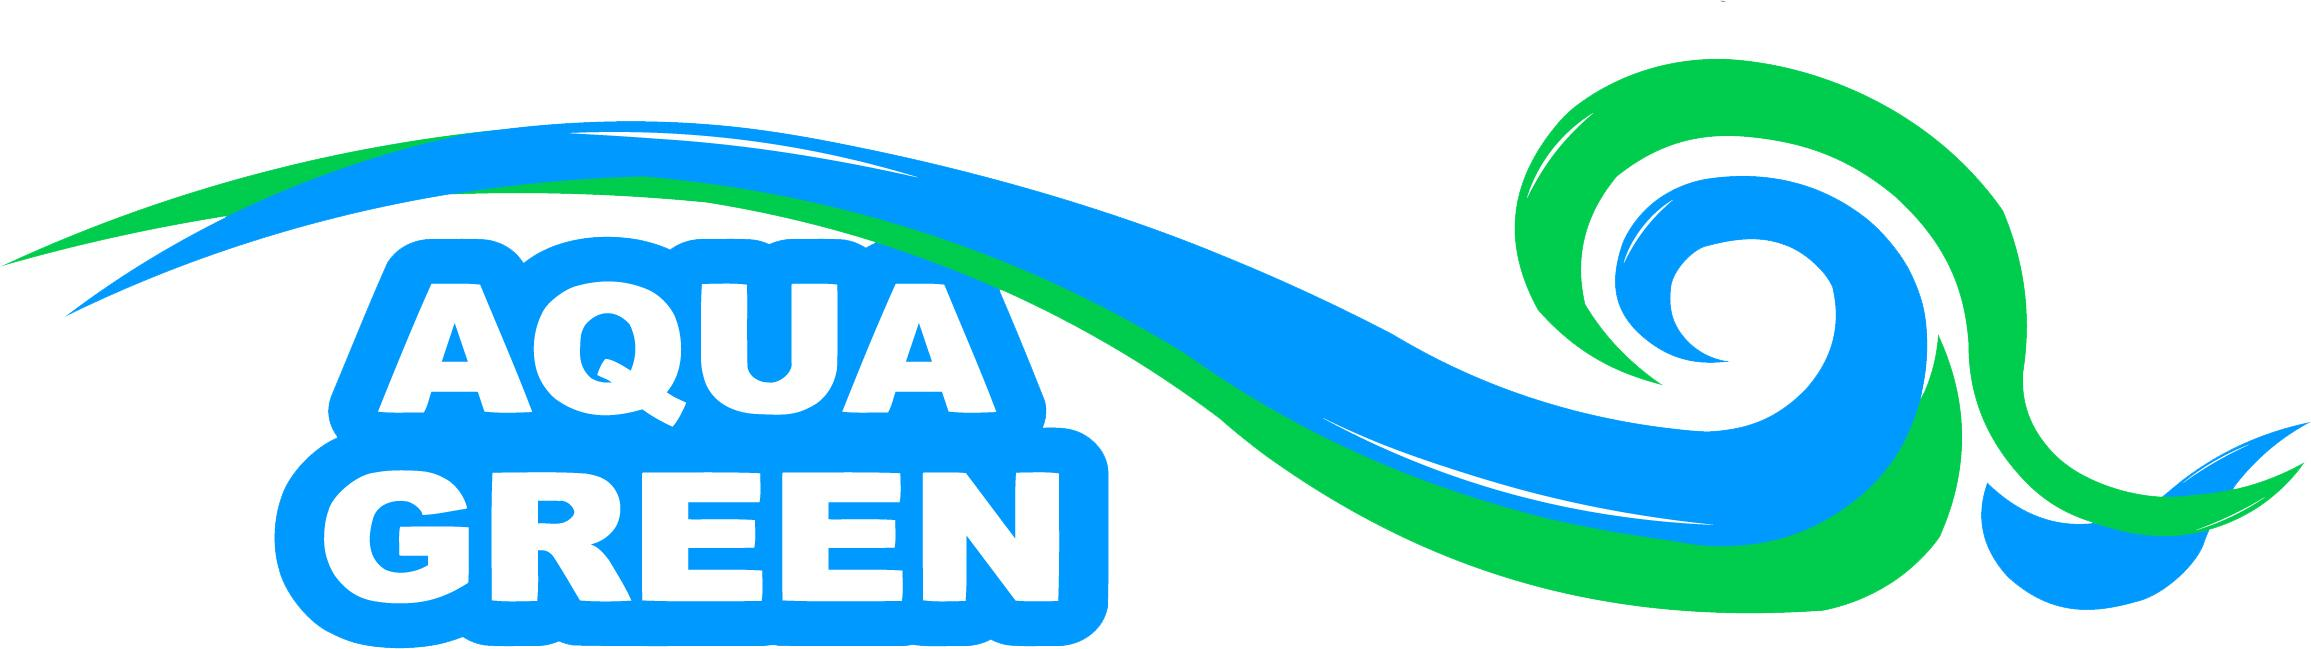 aquagreen logo_11_1_1